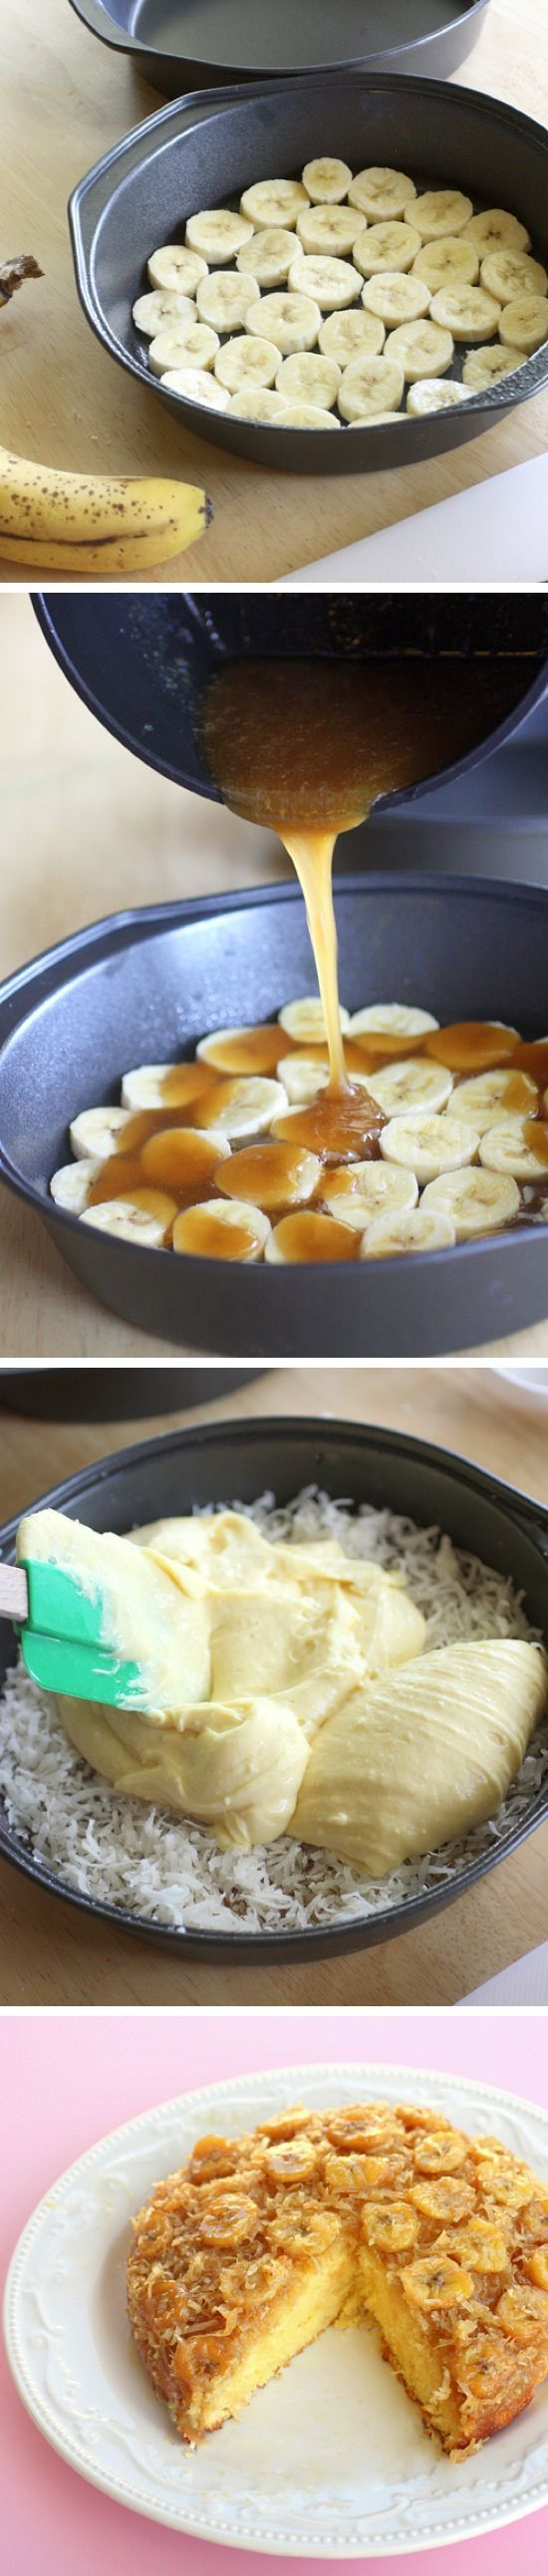 Banana Coconut Upside Down Cake | to cook | Pinterest